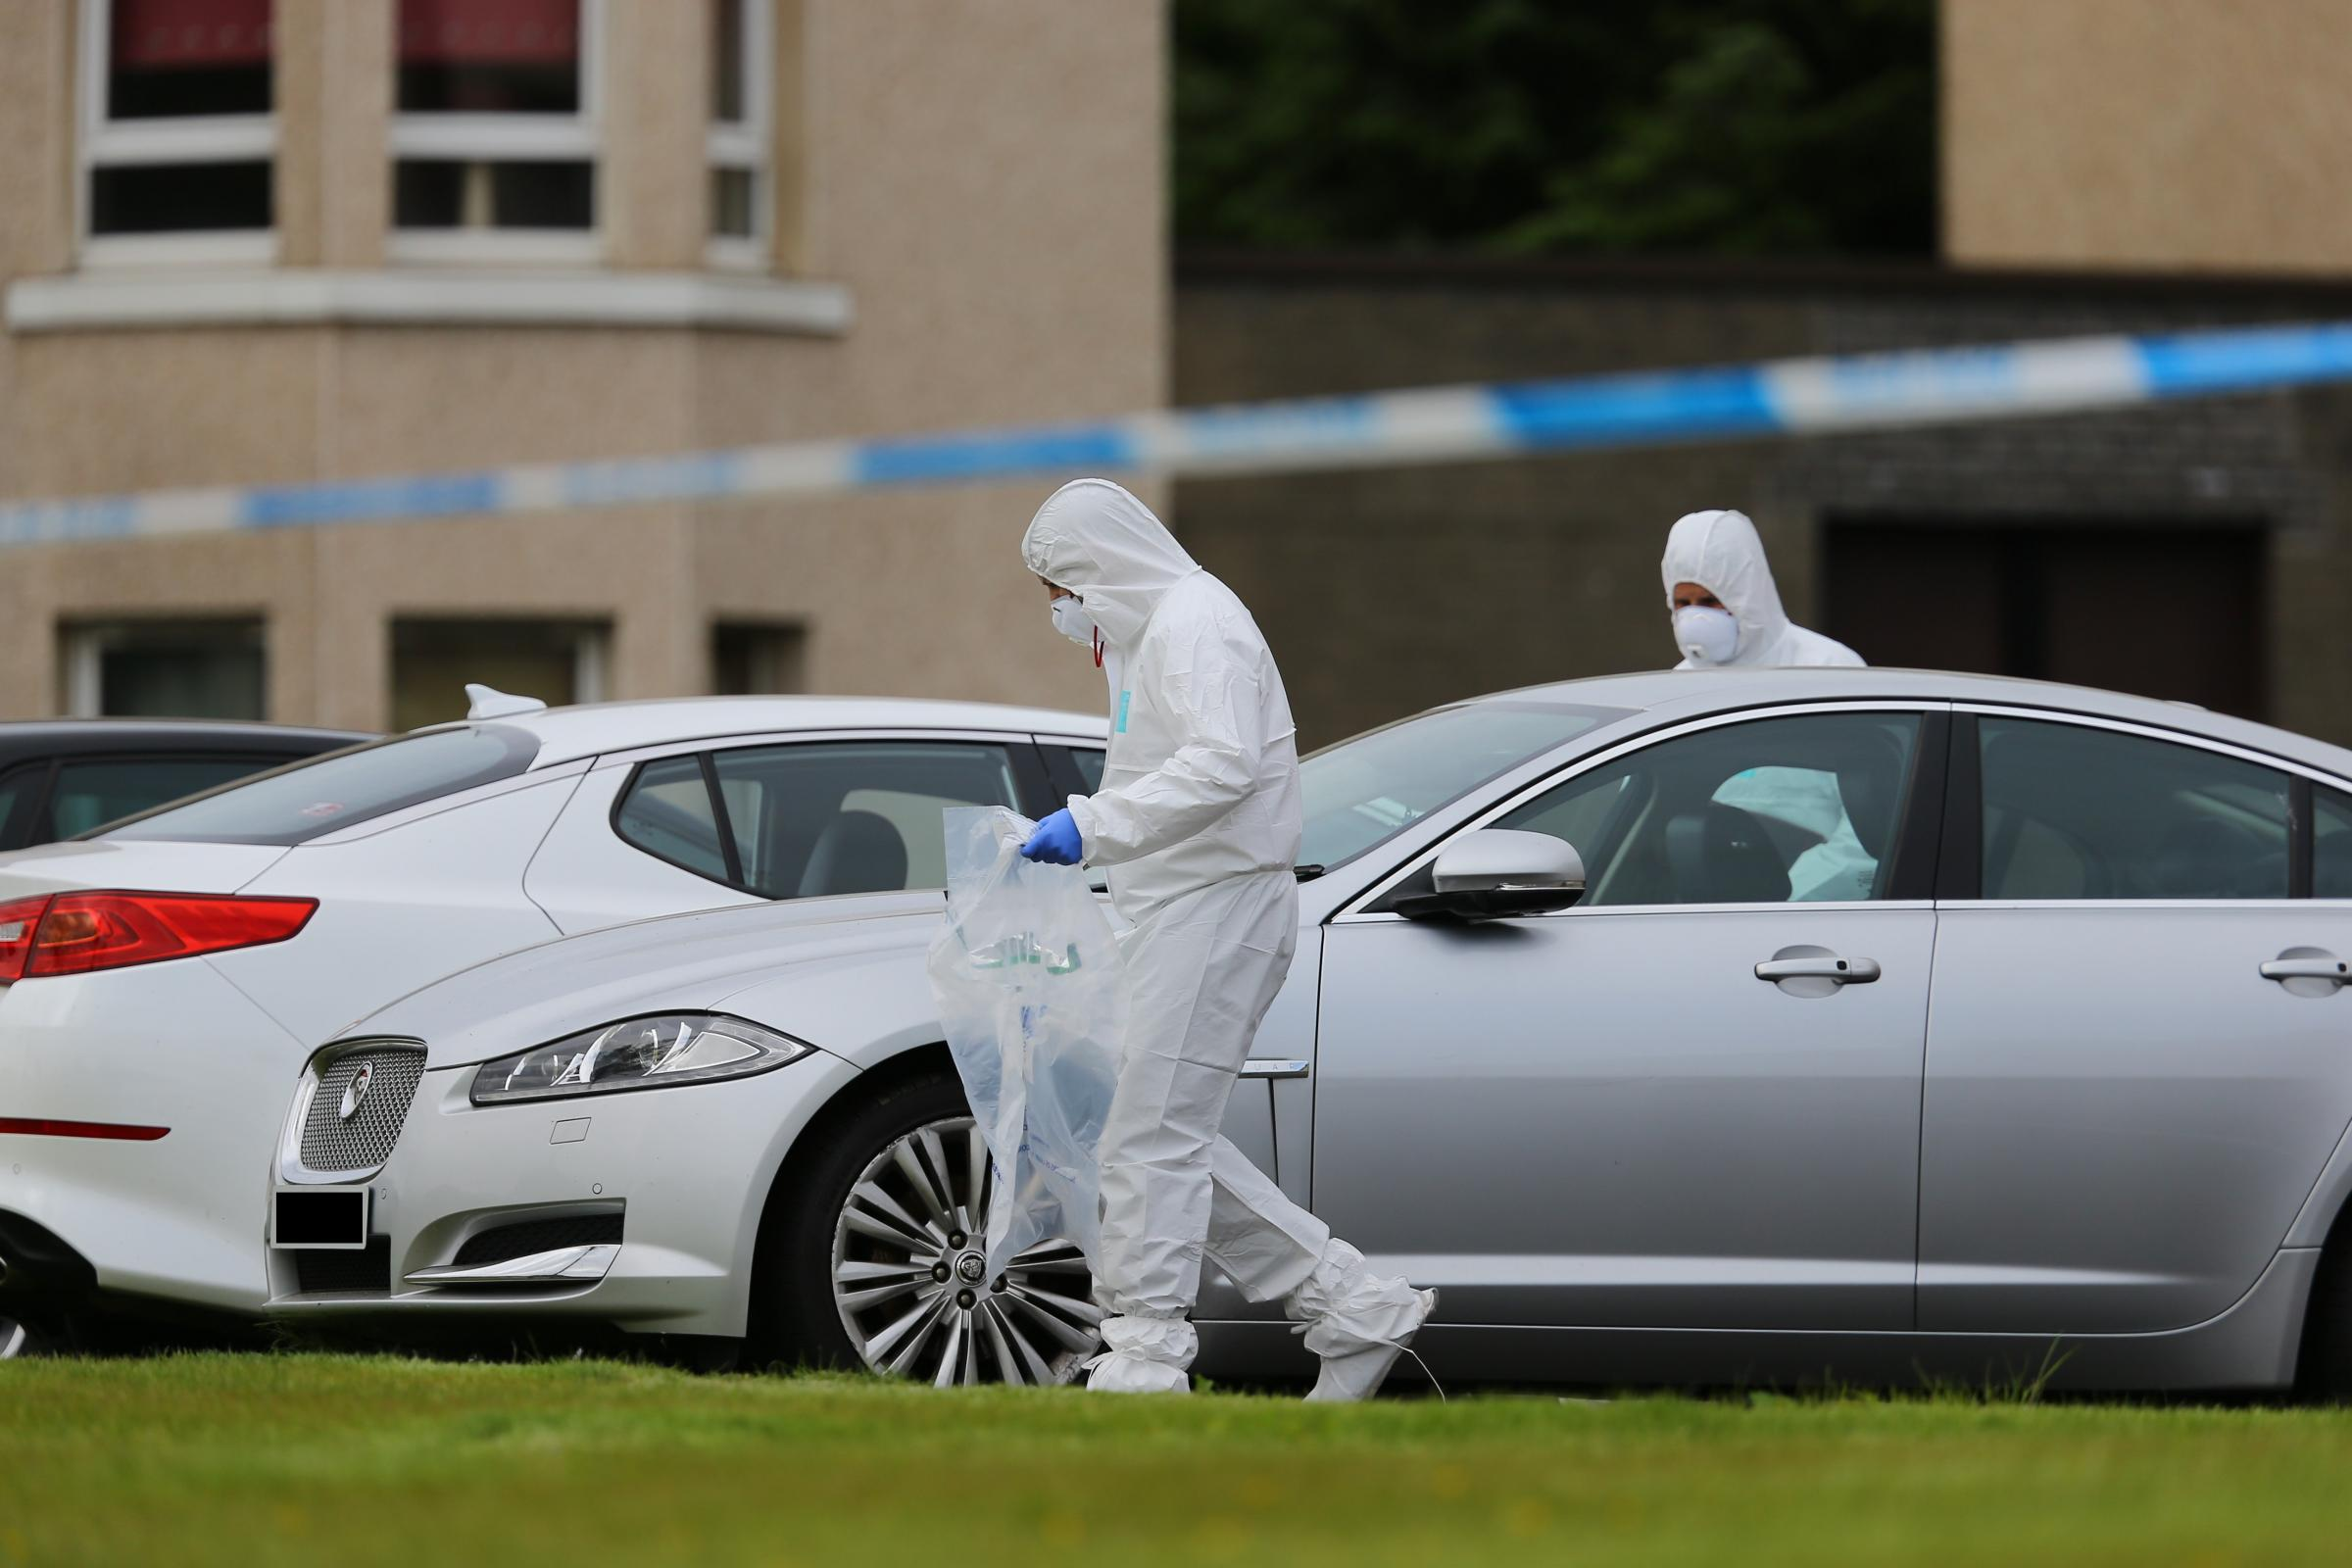 Police attending the aftermath of an incident at Kingsway Court, Scotstoun, Glasgow. A wrecked car on the grass in front of the flats...   Photograph by Colin Mearns.21 May 2018..